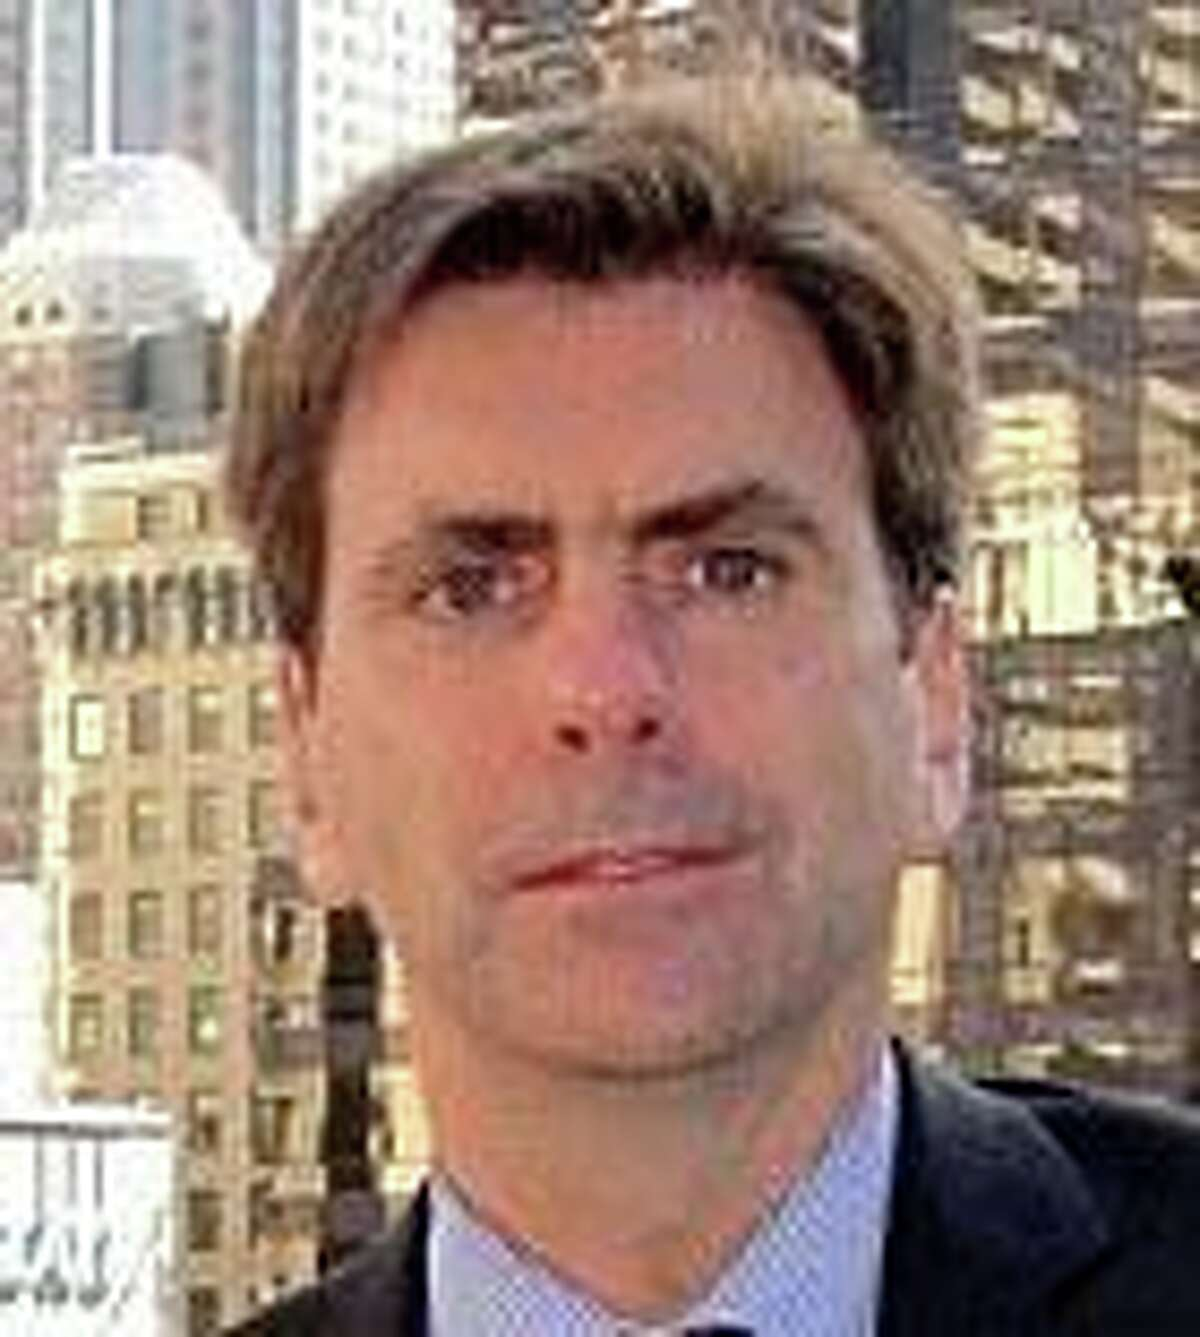 Thomas Lynch is the founder and senior managing director of Greenwich, Conn.-based investment firm Mill Road Capital.